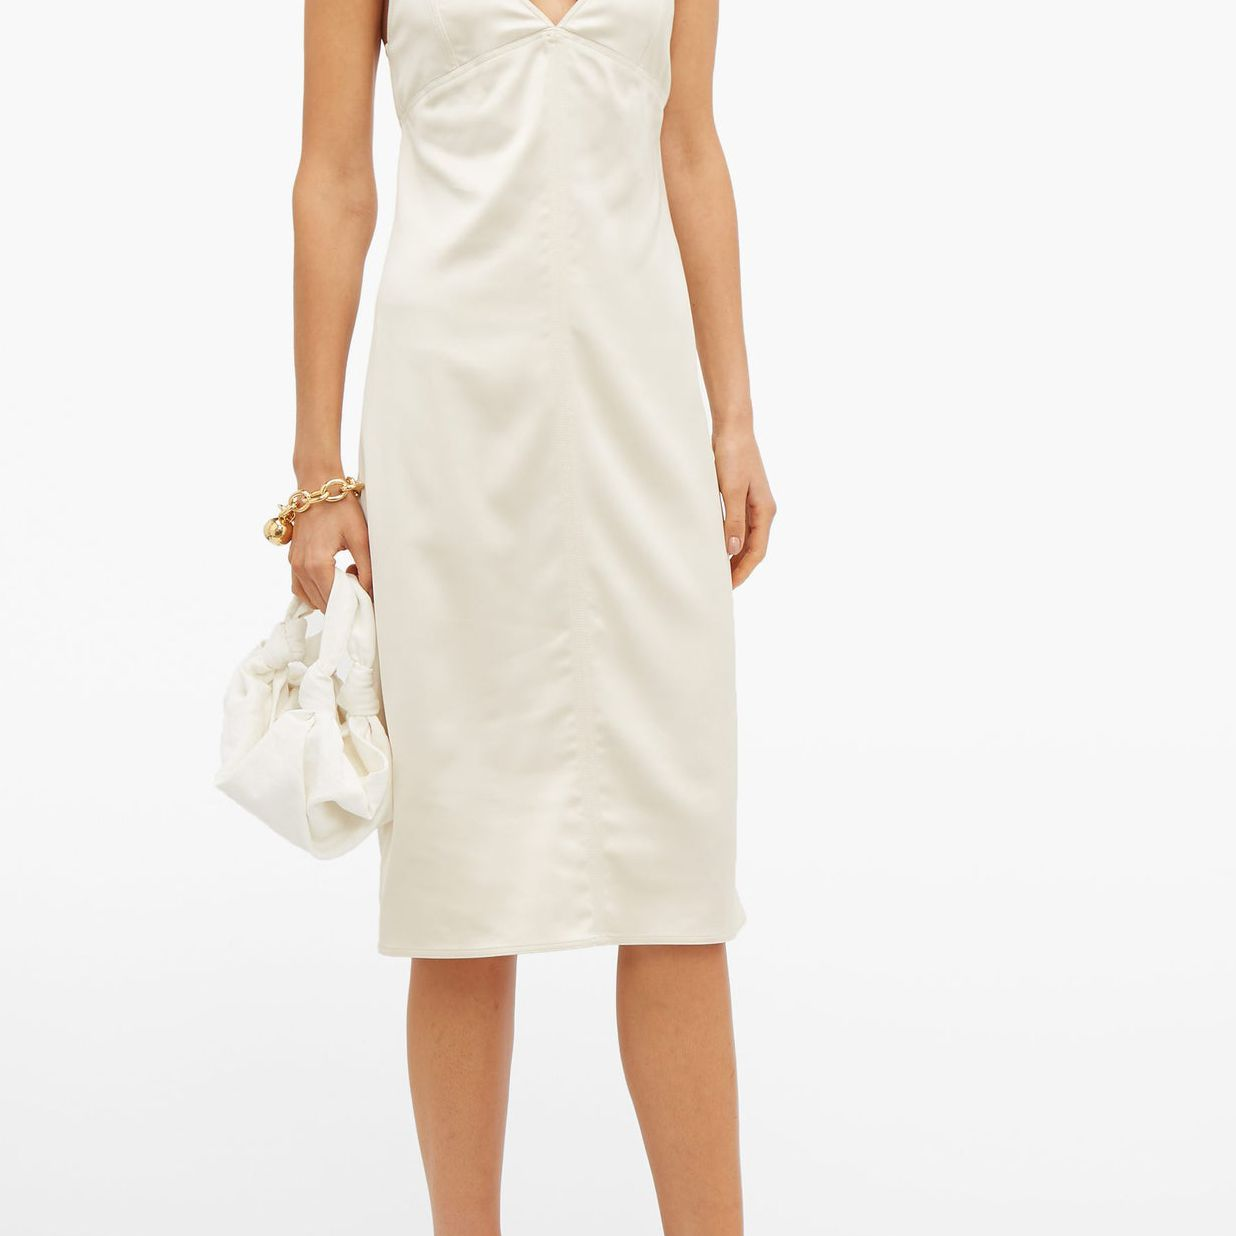 Knotted-strap satin pencil dress